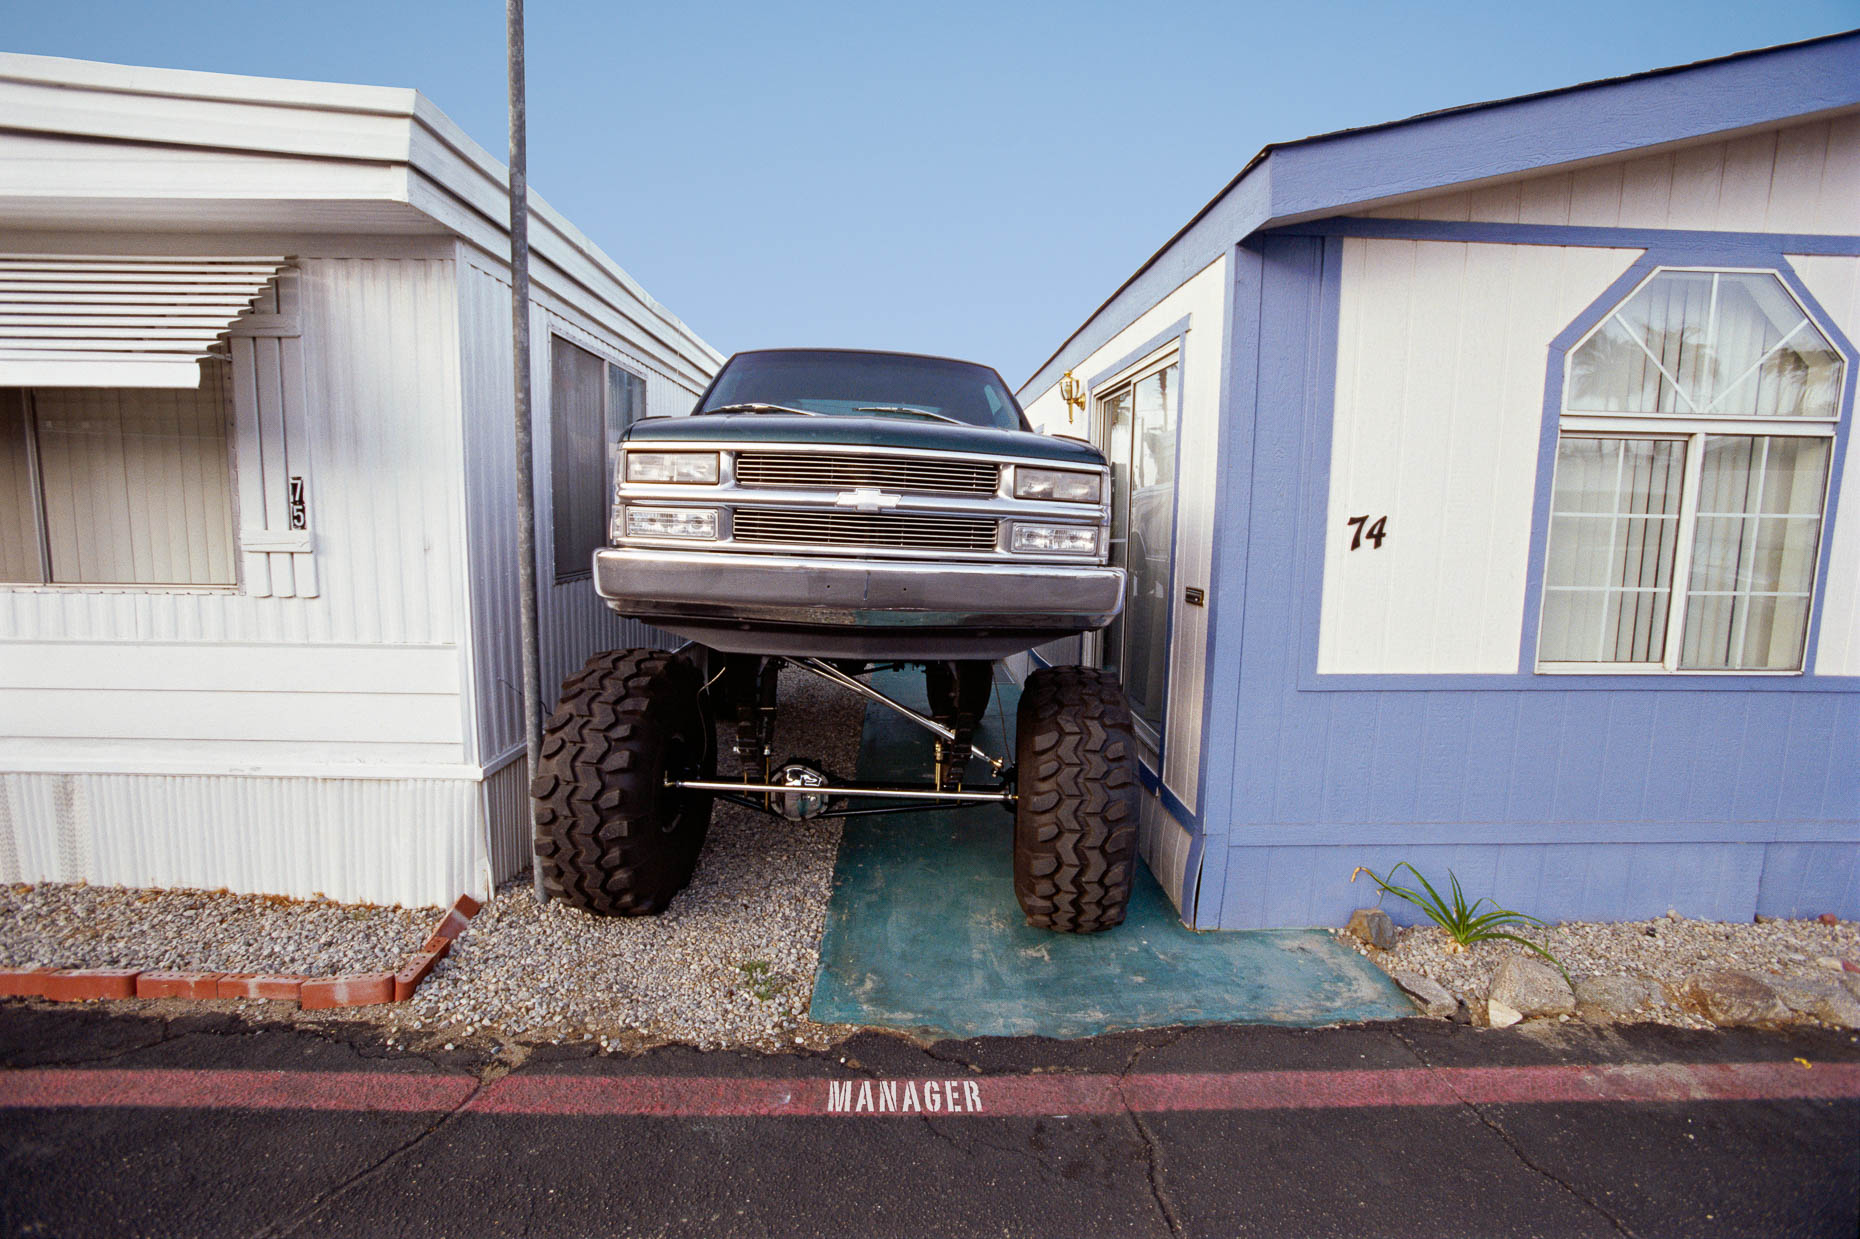 Monster truck parked tightly between two mobile homes. MANAGER is painted on pavement in front of it. David Zaitz